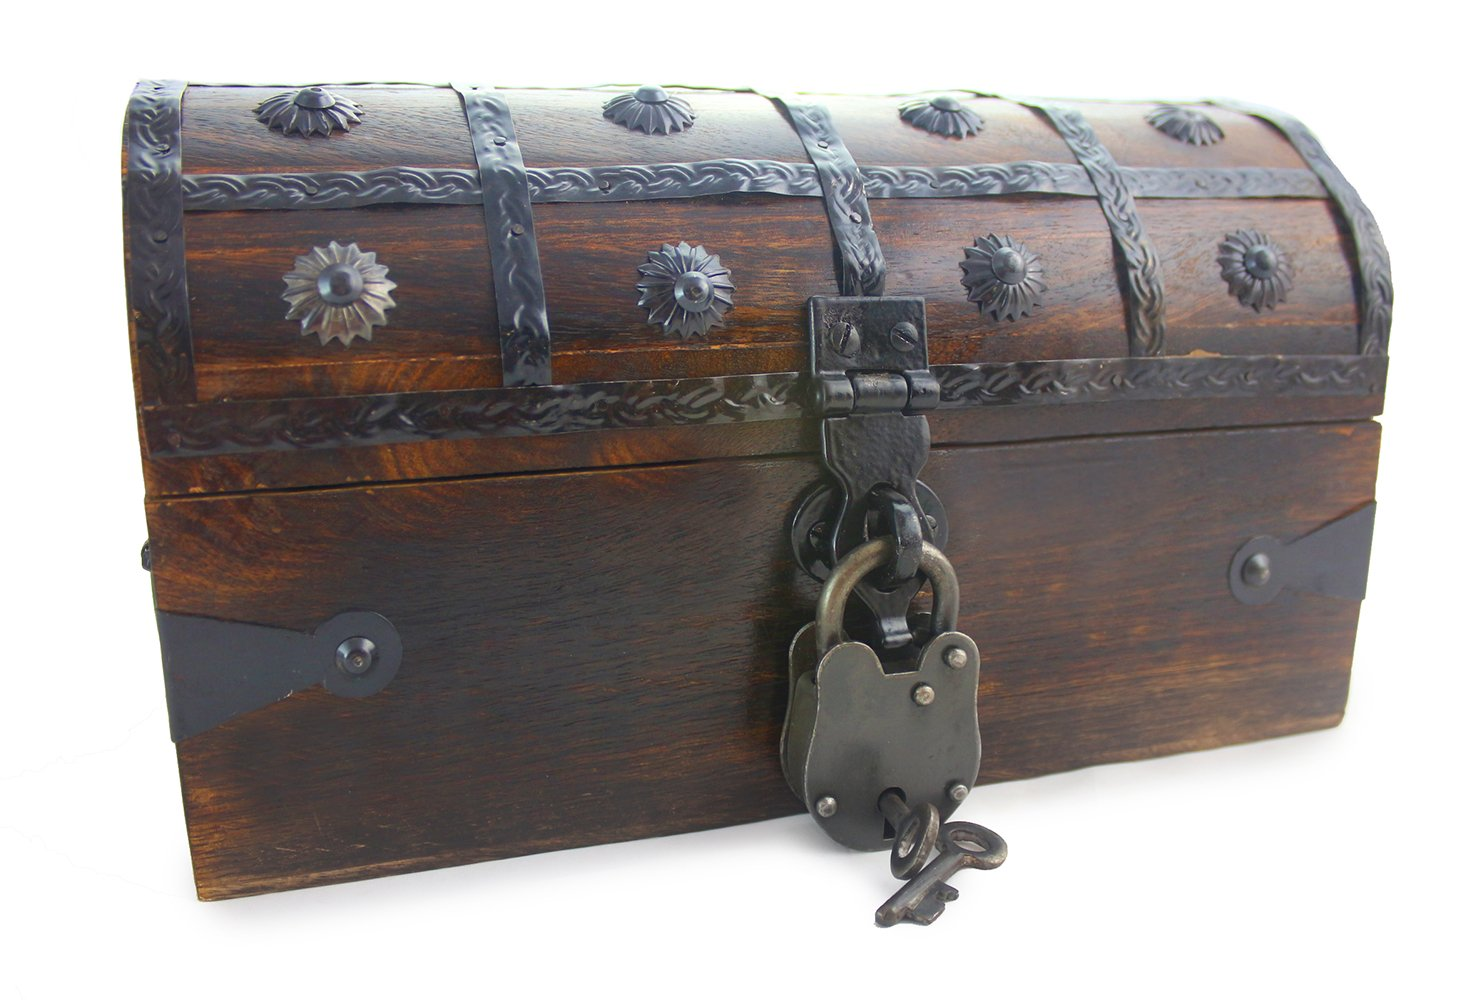 "Well Pack Box Wooden Pirate Treasure Chest Box 11"" x 7"" x 7"" Anne Bonnie Model Authentic Antique Style With Black Hasp Latch Includes Master Padlock & Vintage Skeleton Keys"